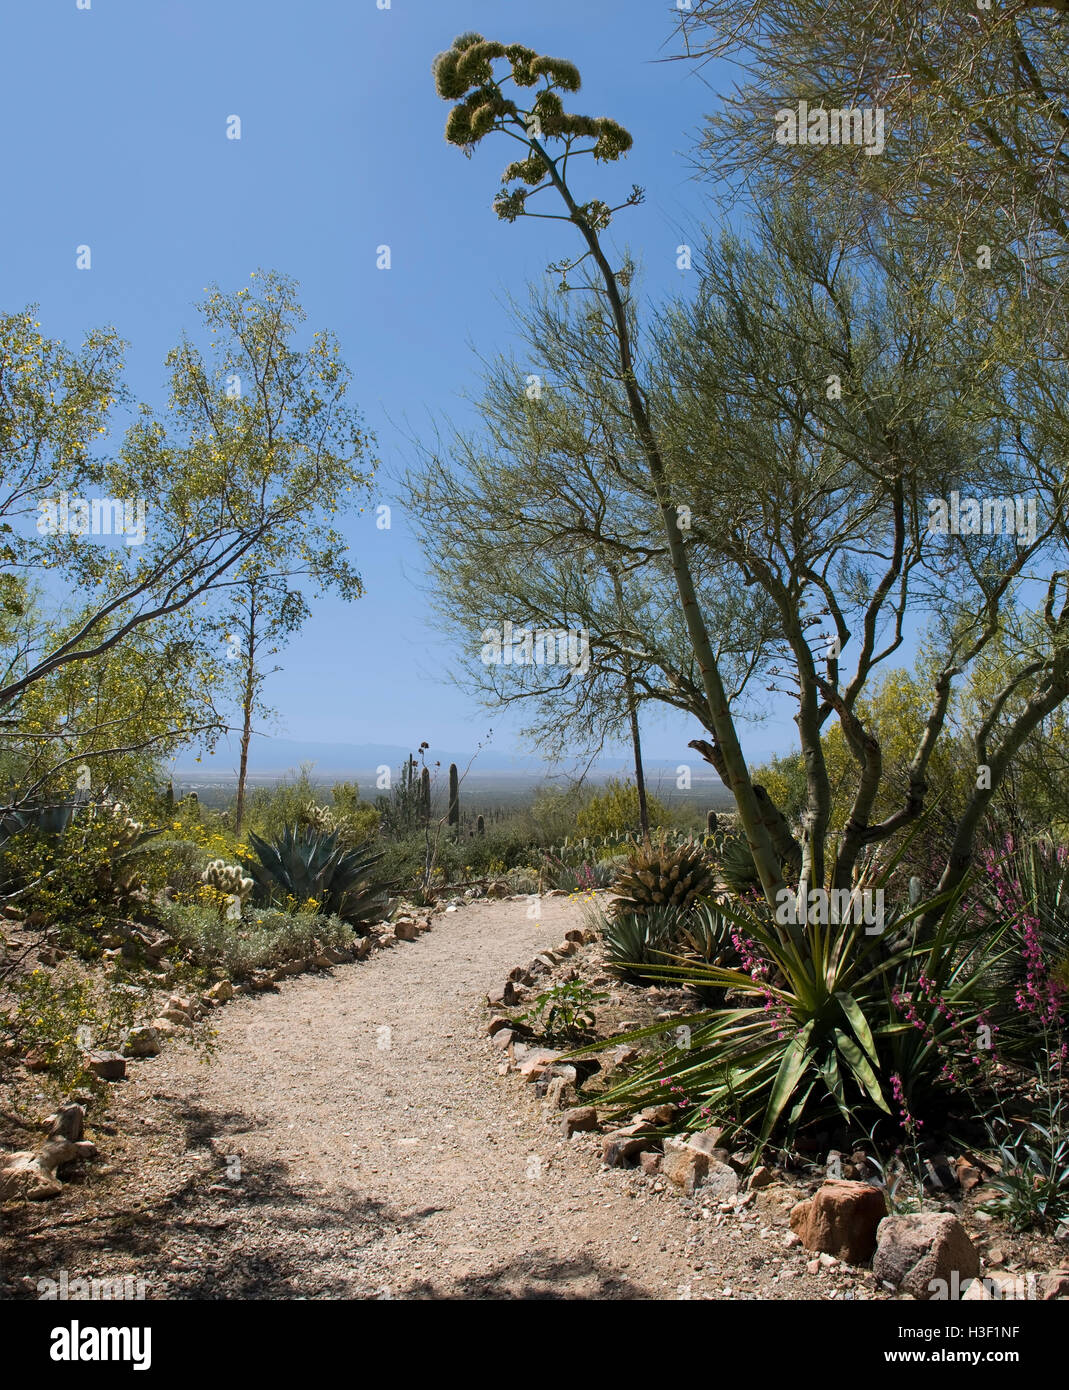 Desert Path of rocks Leading to Blue Sky - Stock Image